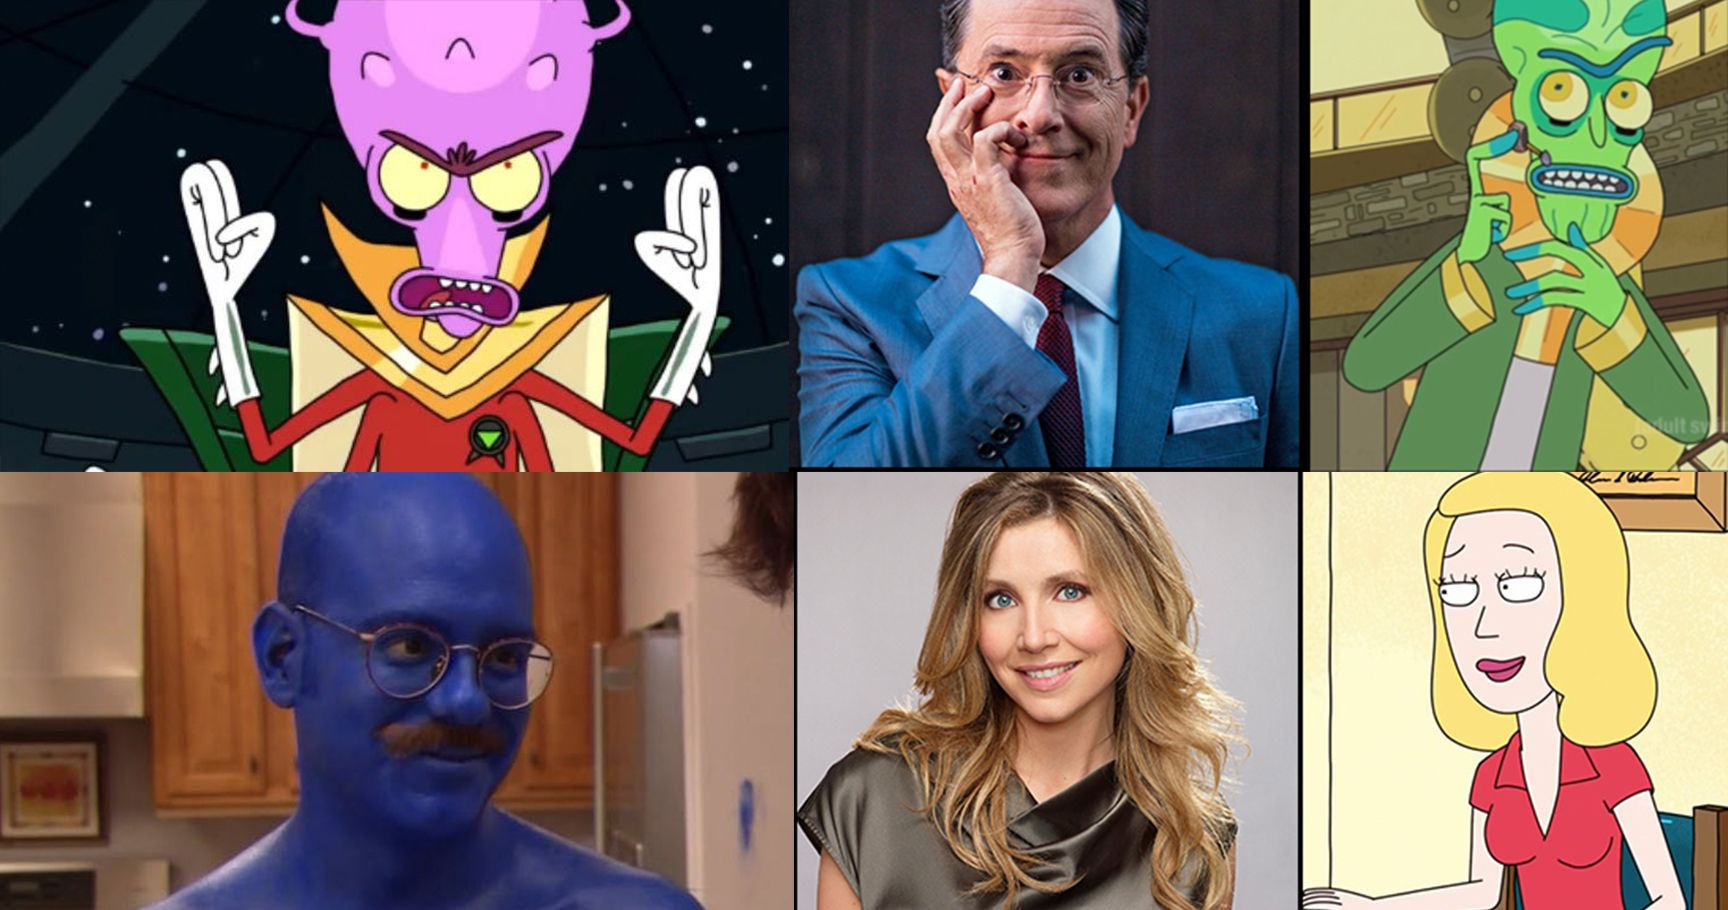 15 Celebrities You Didn't Realize were in 'Rick and Morty'